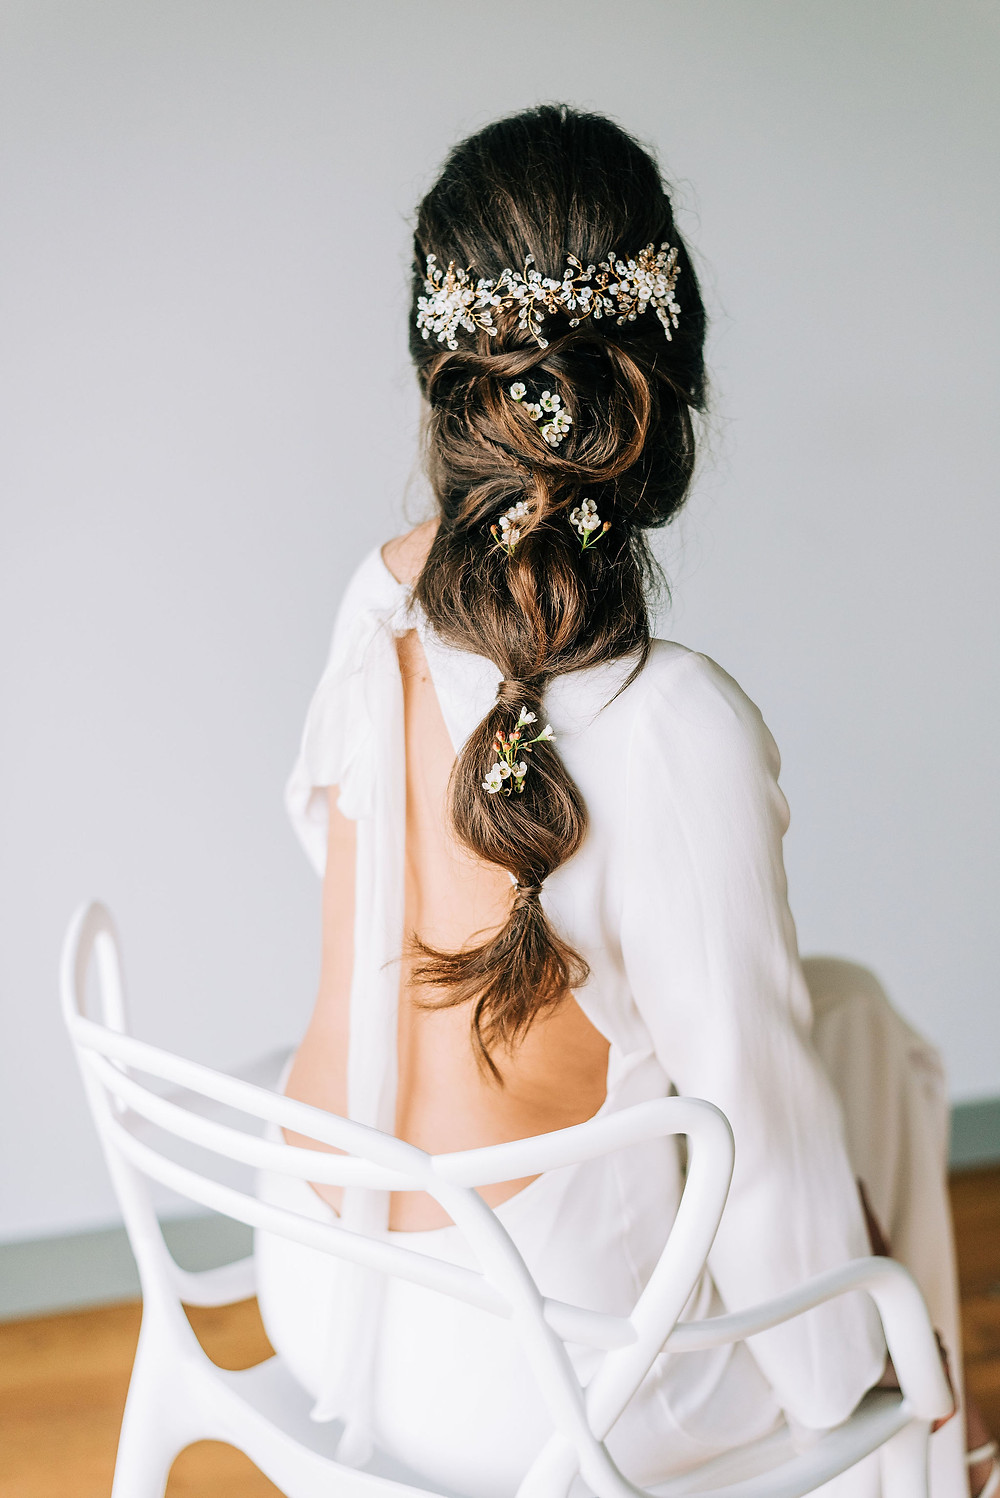 boho wedding dress with low back wedding dress and with Clare Lloyd accessories